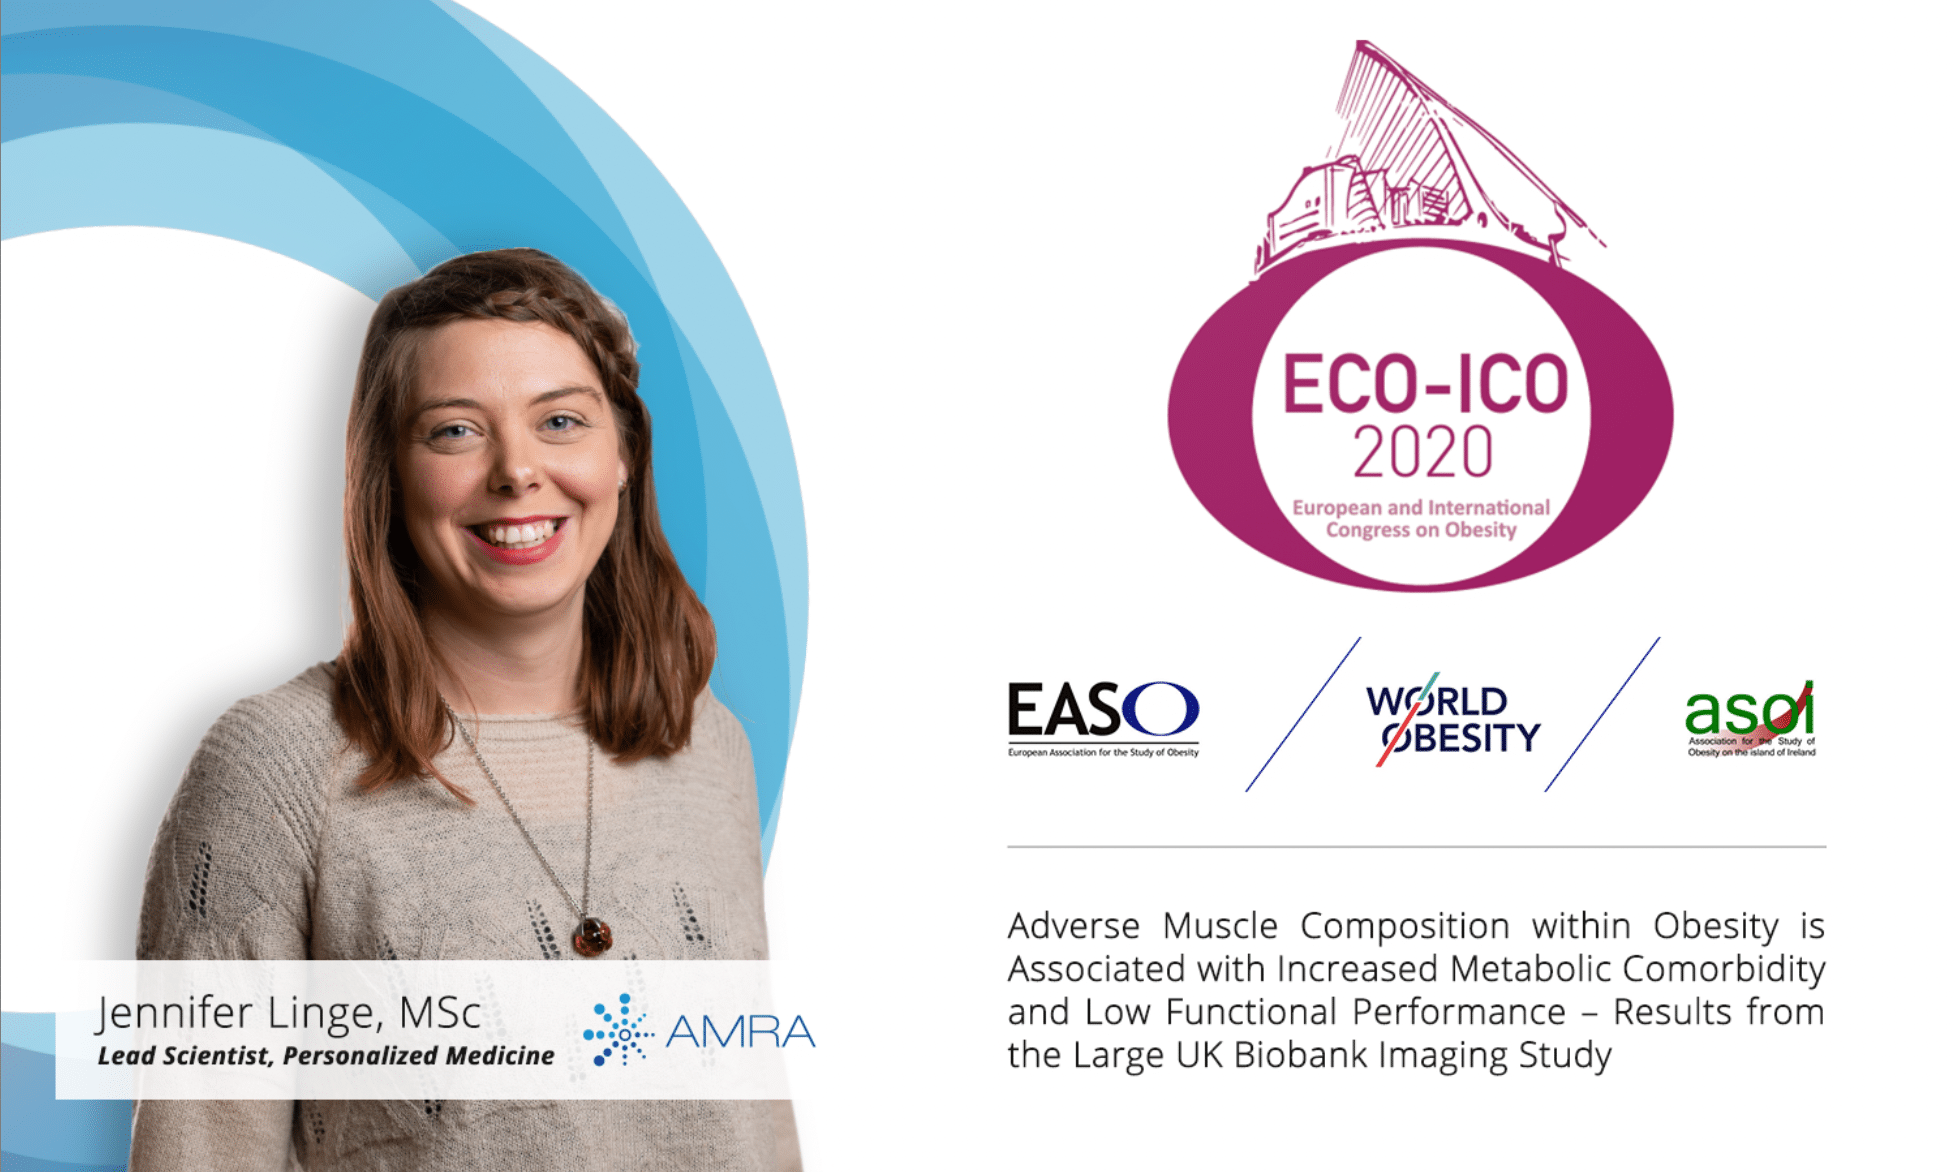 AMRA Medical Will Highlight MRI-Based Muscle Composition in Obesity at ECOICO 2020